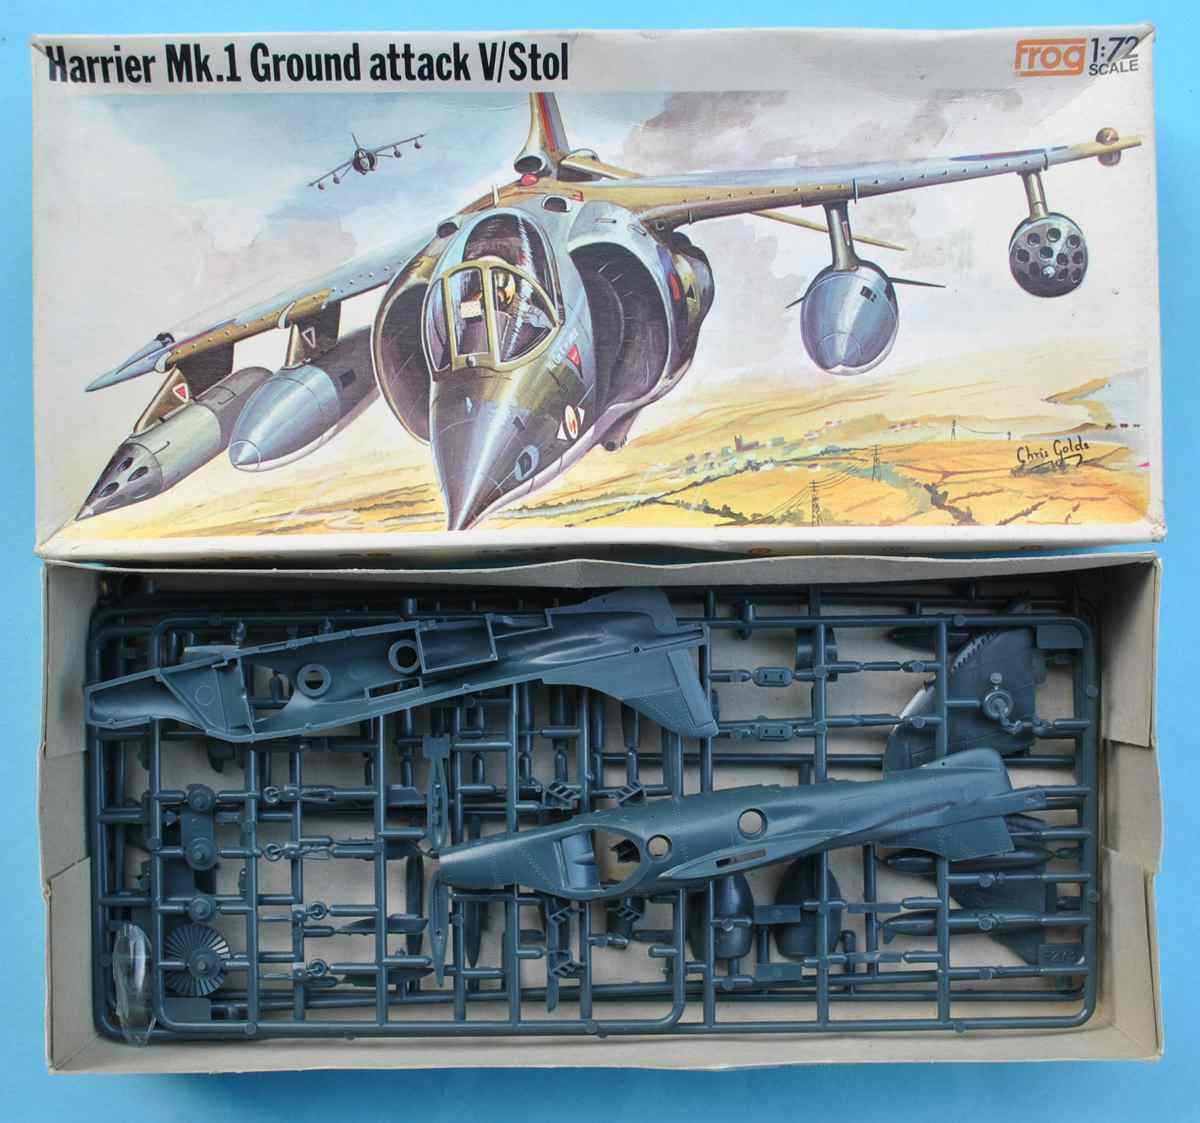 FROG-F273-Harrier-Mk.-I-22 Kit-Nostalgie: Harrier Mk. I in 1:72 von FROG